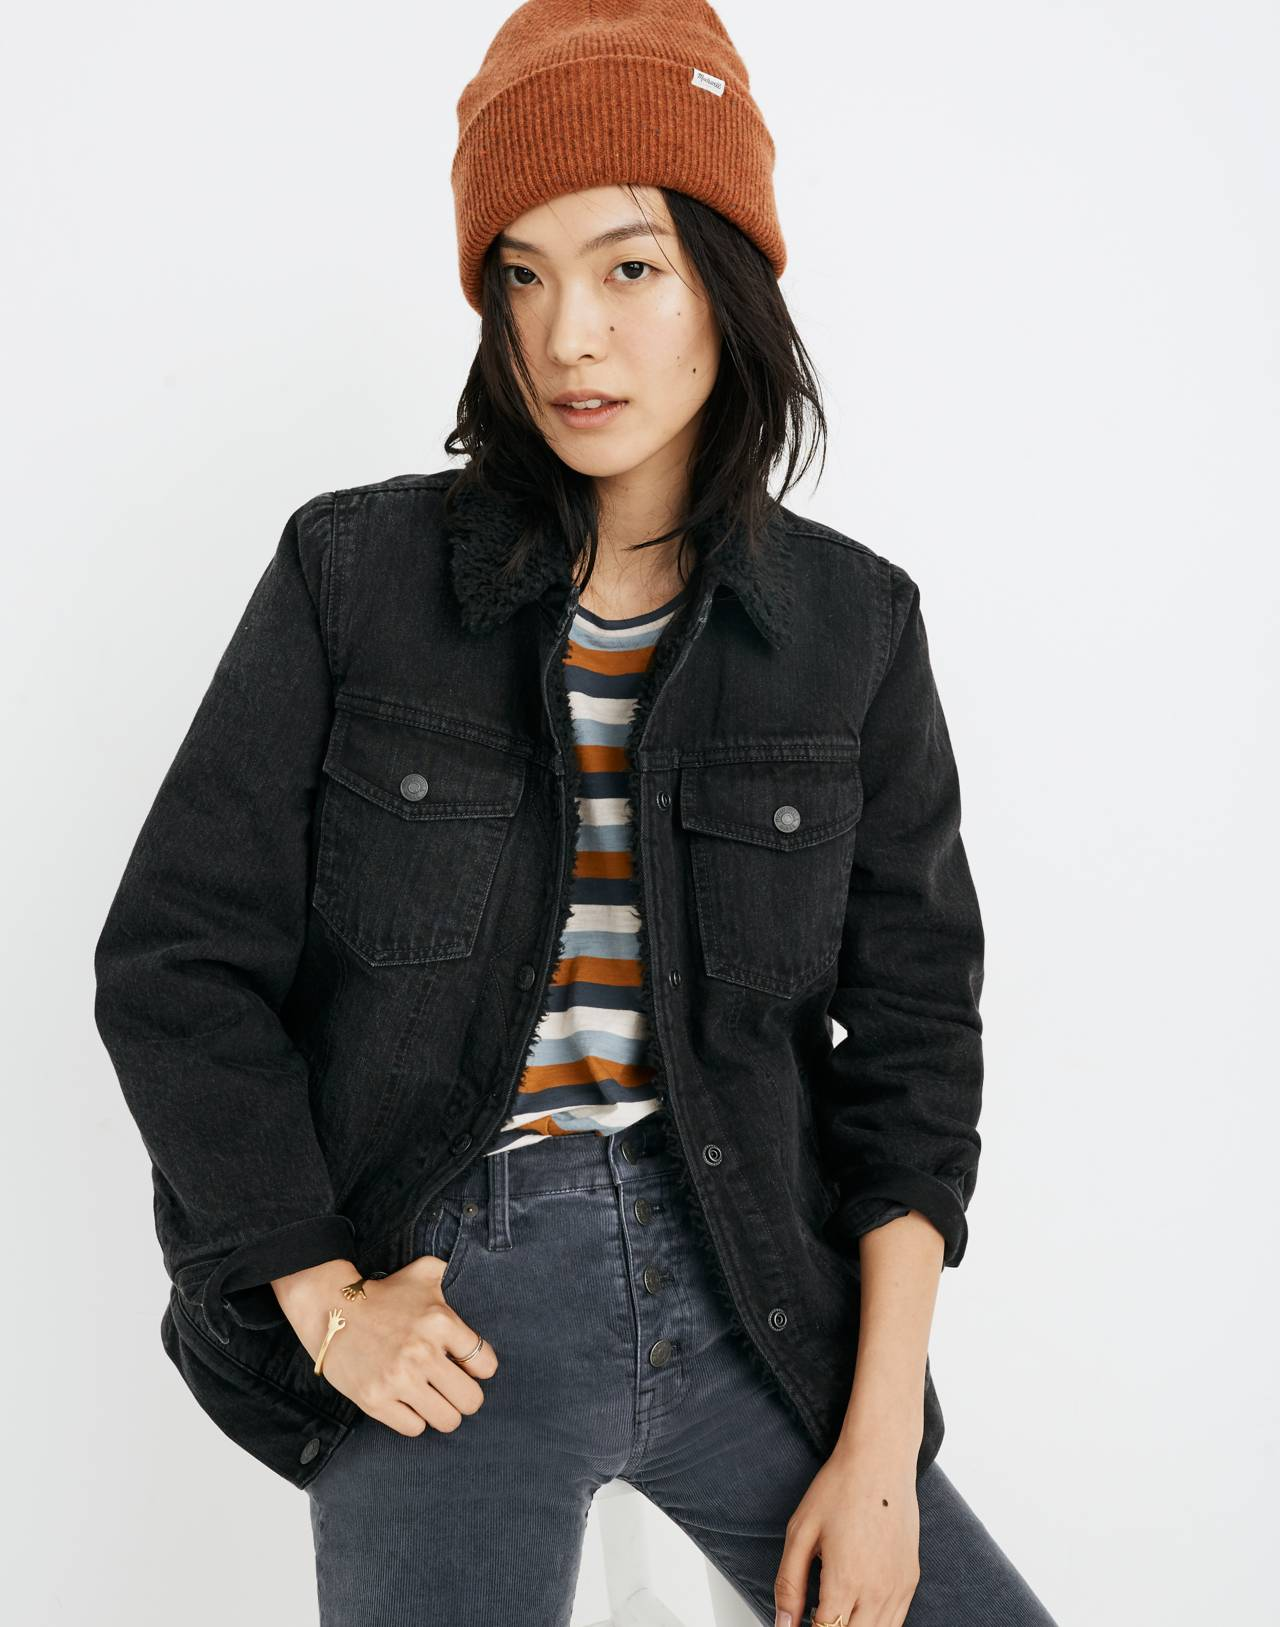 The Oversized Jean Jacket in Gallagher Black: Sherpa Edition in gallagher wash image 1